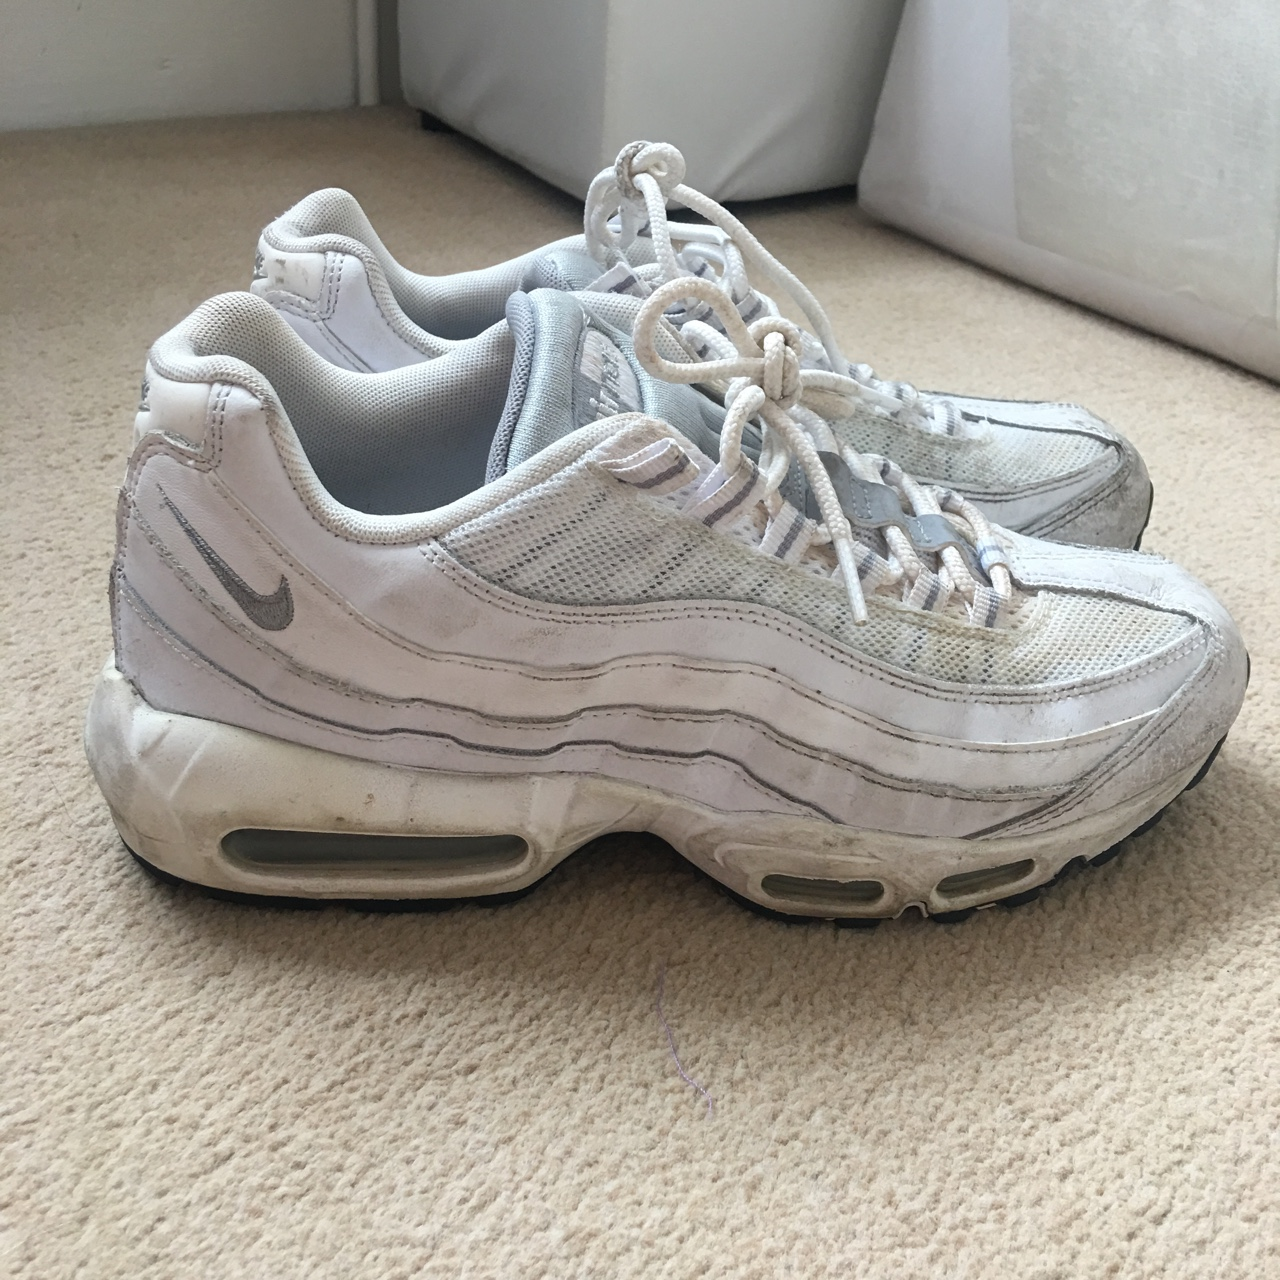 sneakers for cheap 0f480 3192e Nike air max 95's white size 7 Good condition could... - Depop